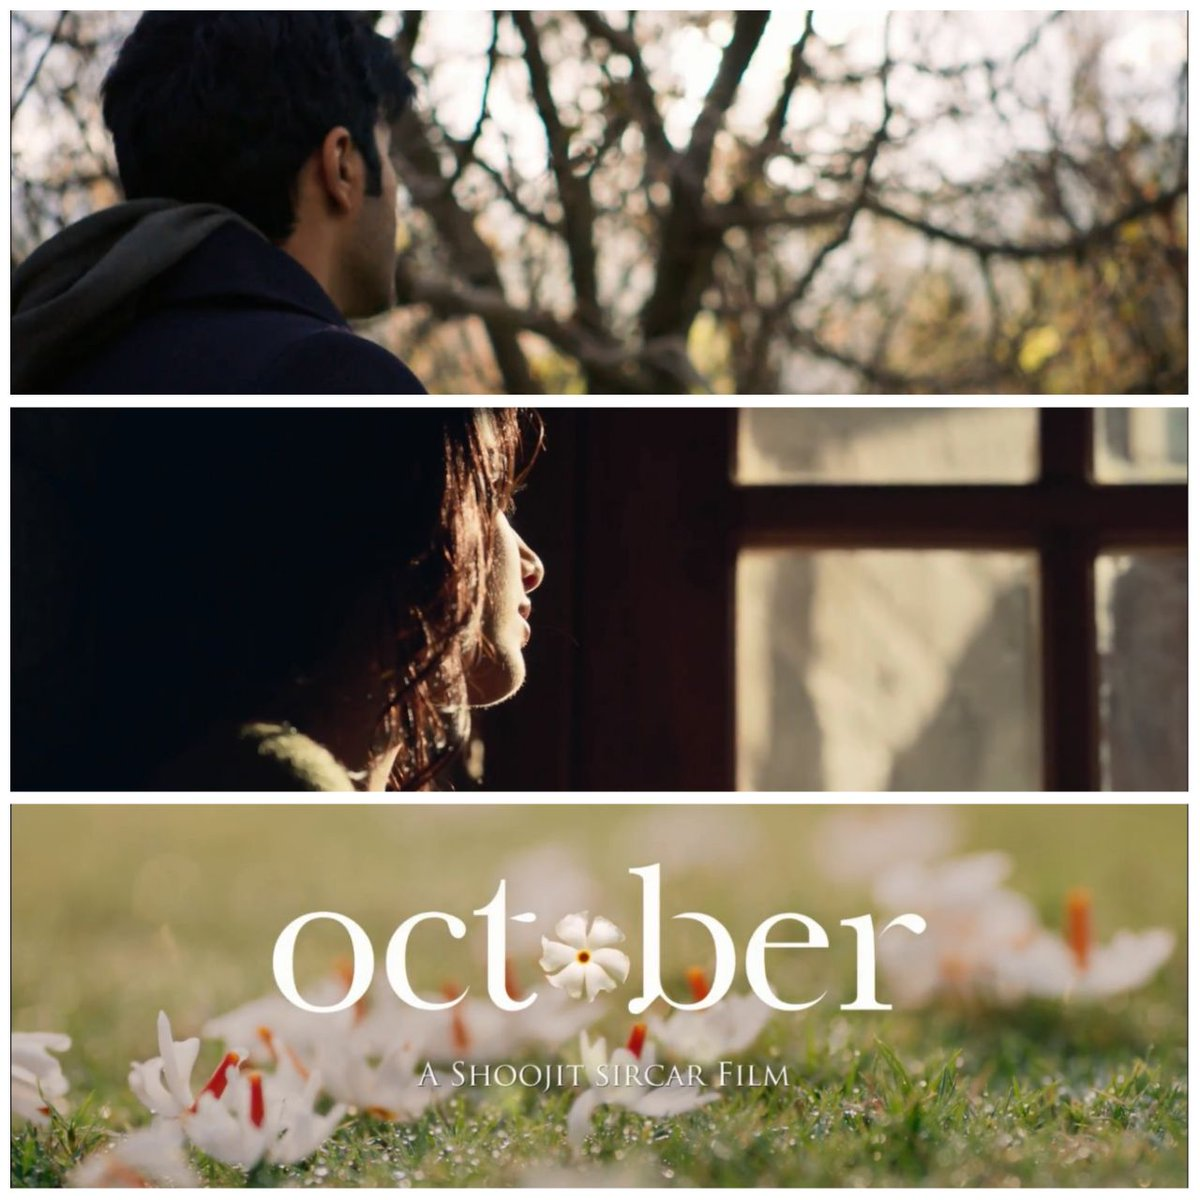 Badri Movie Images With Quotes: October Teaser